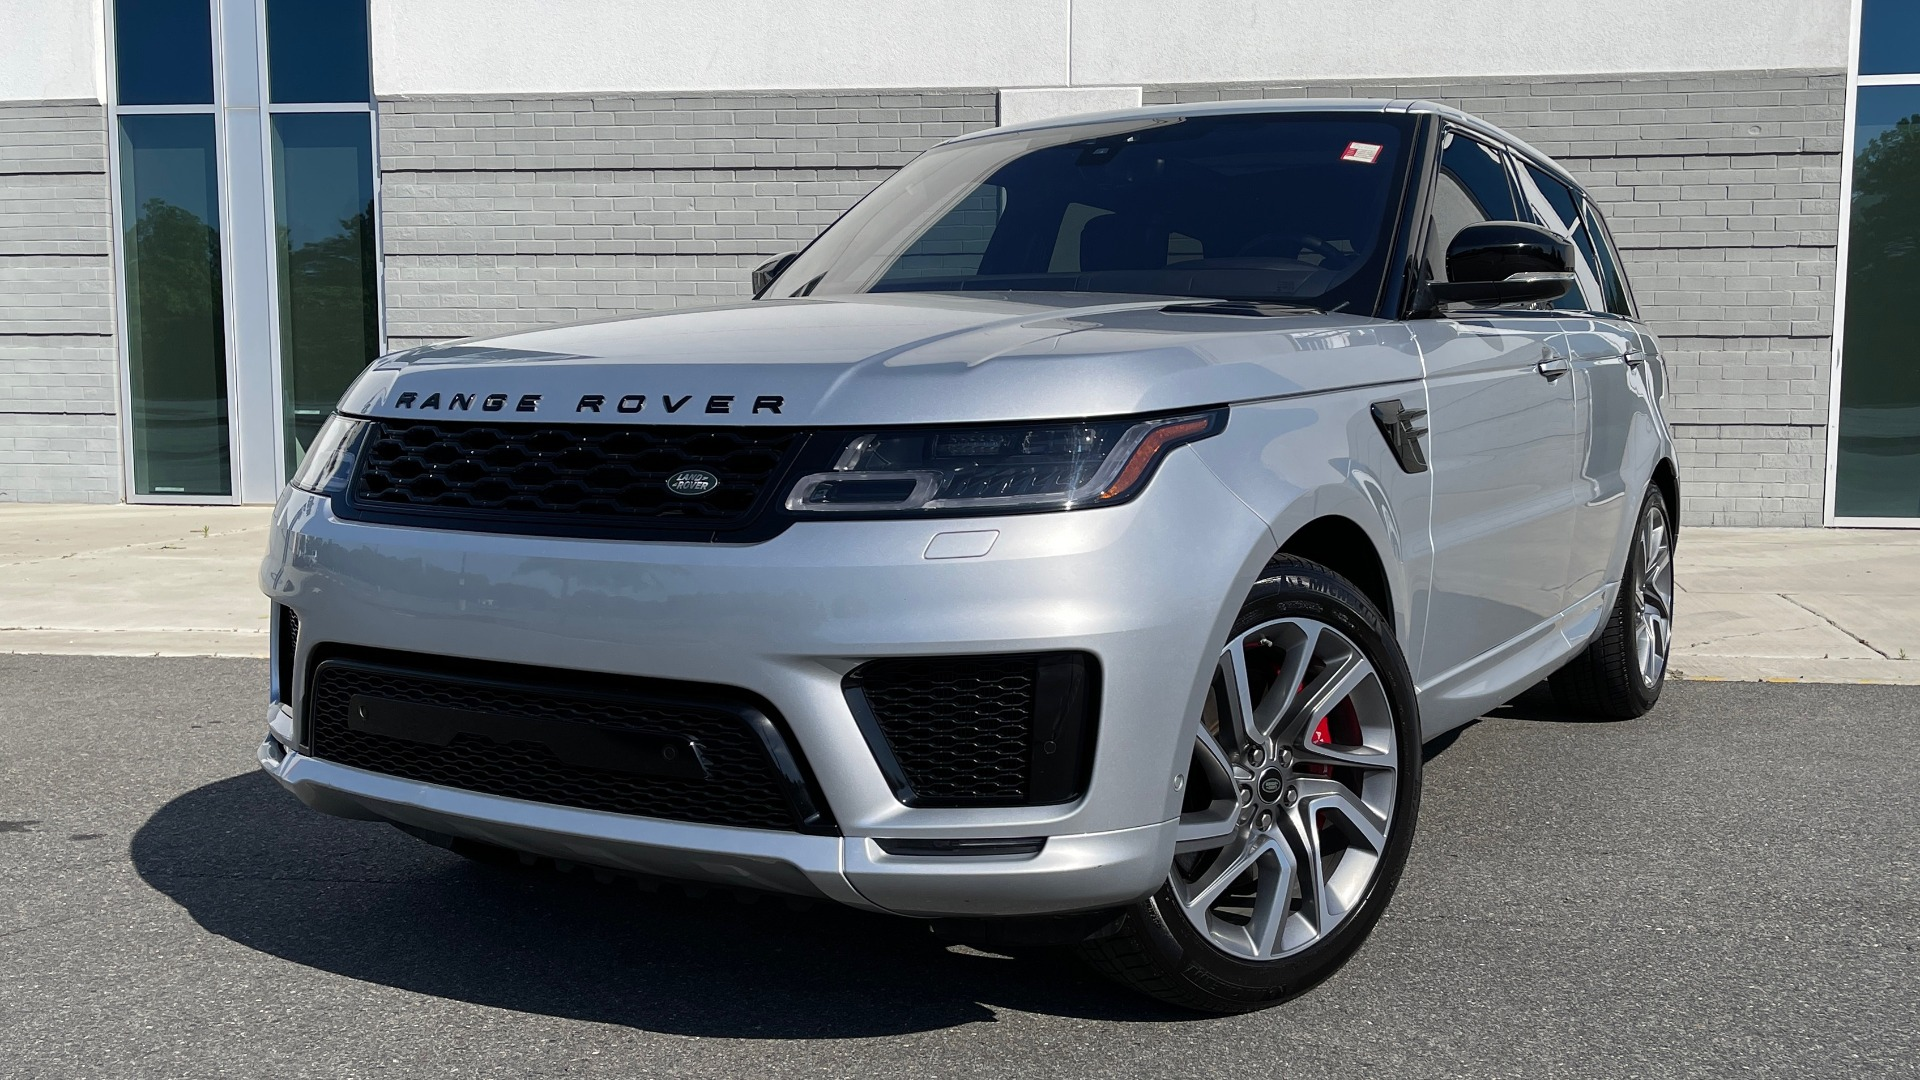 Used 2019 Land Rover RANGE ROVER SPORT HSE DYNAMIC / NAV / PANO-ROOF / BLIND SPOT / LANE DEPART / REARVIEW for sale Sold at Formula Imports in Charlotte NC 28227 1